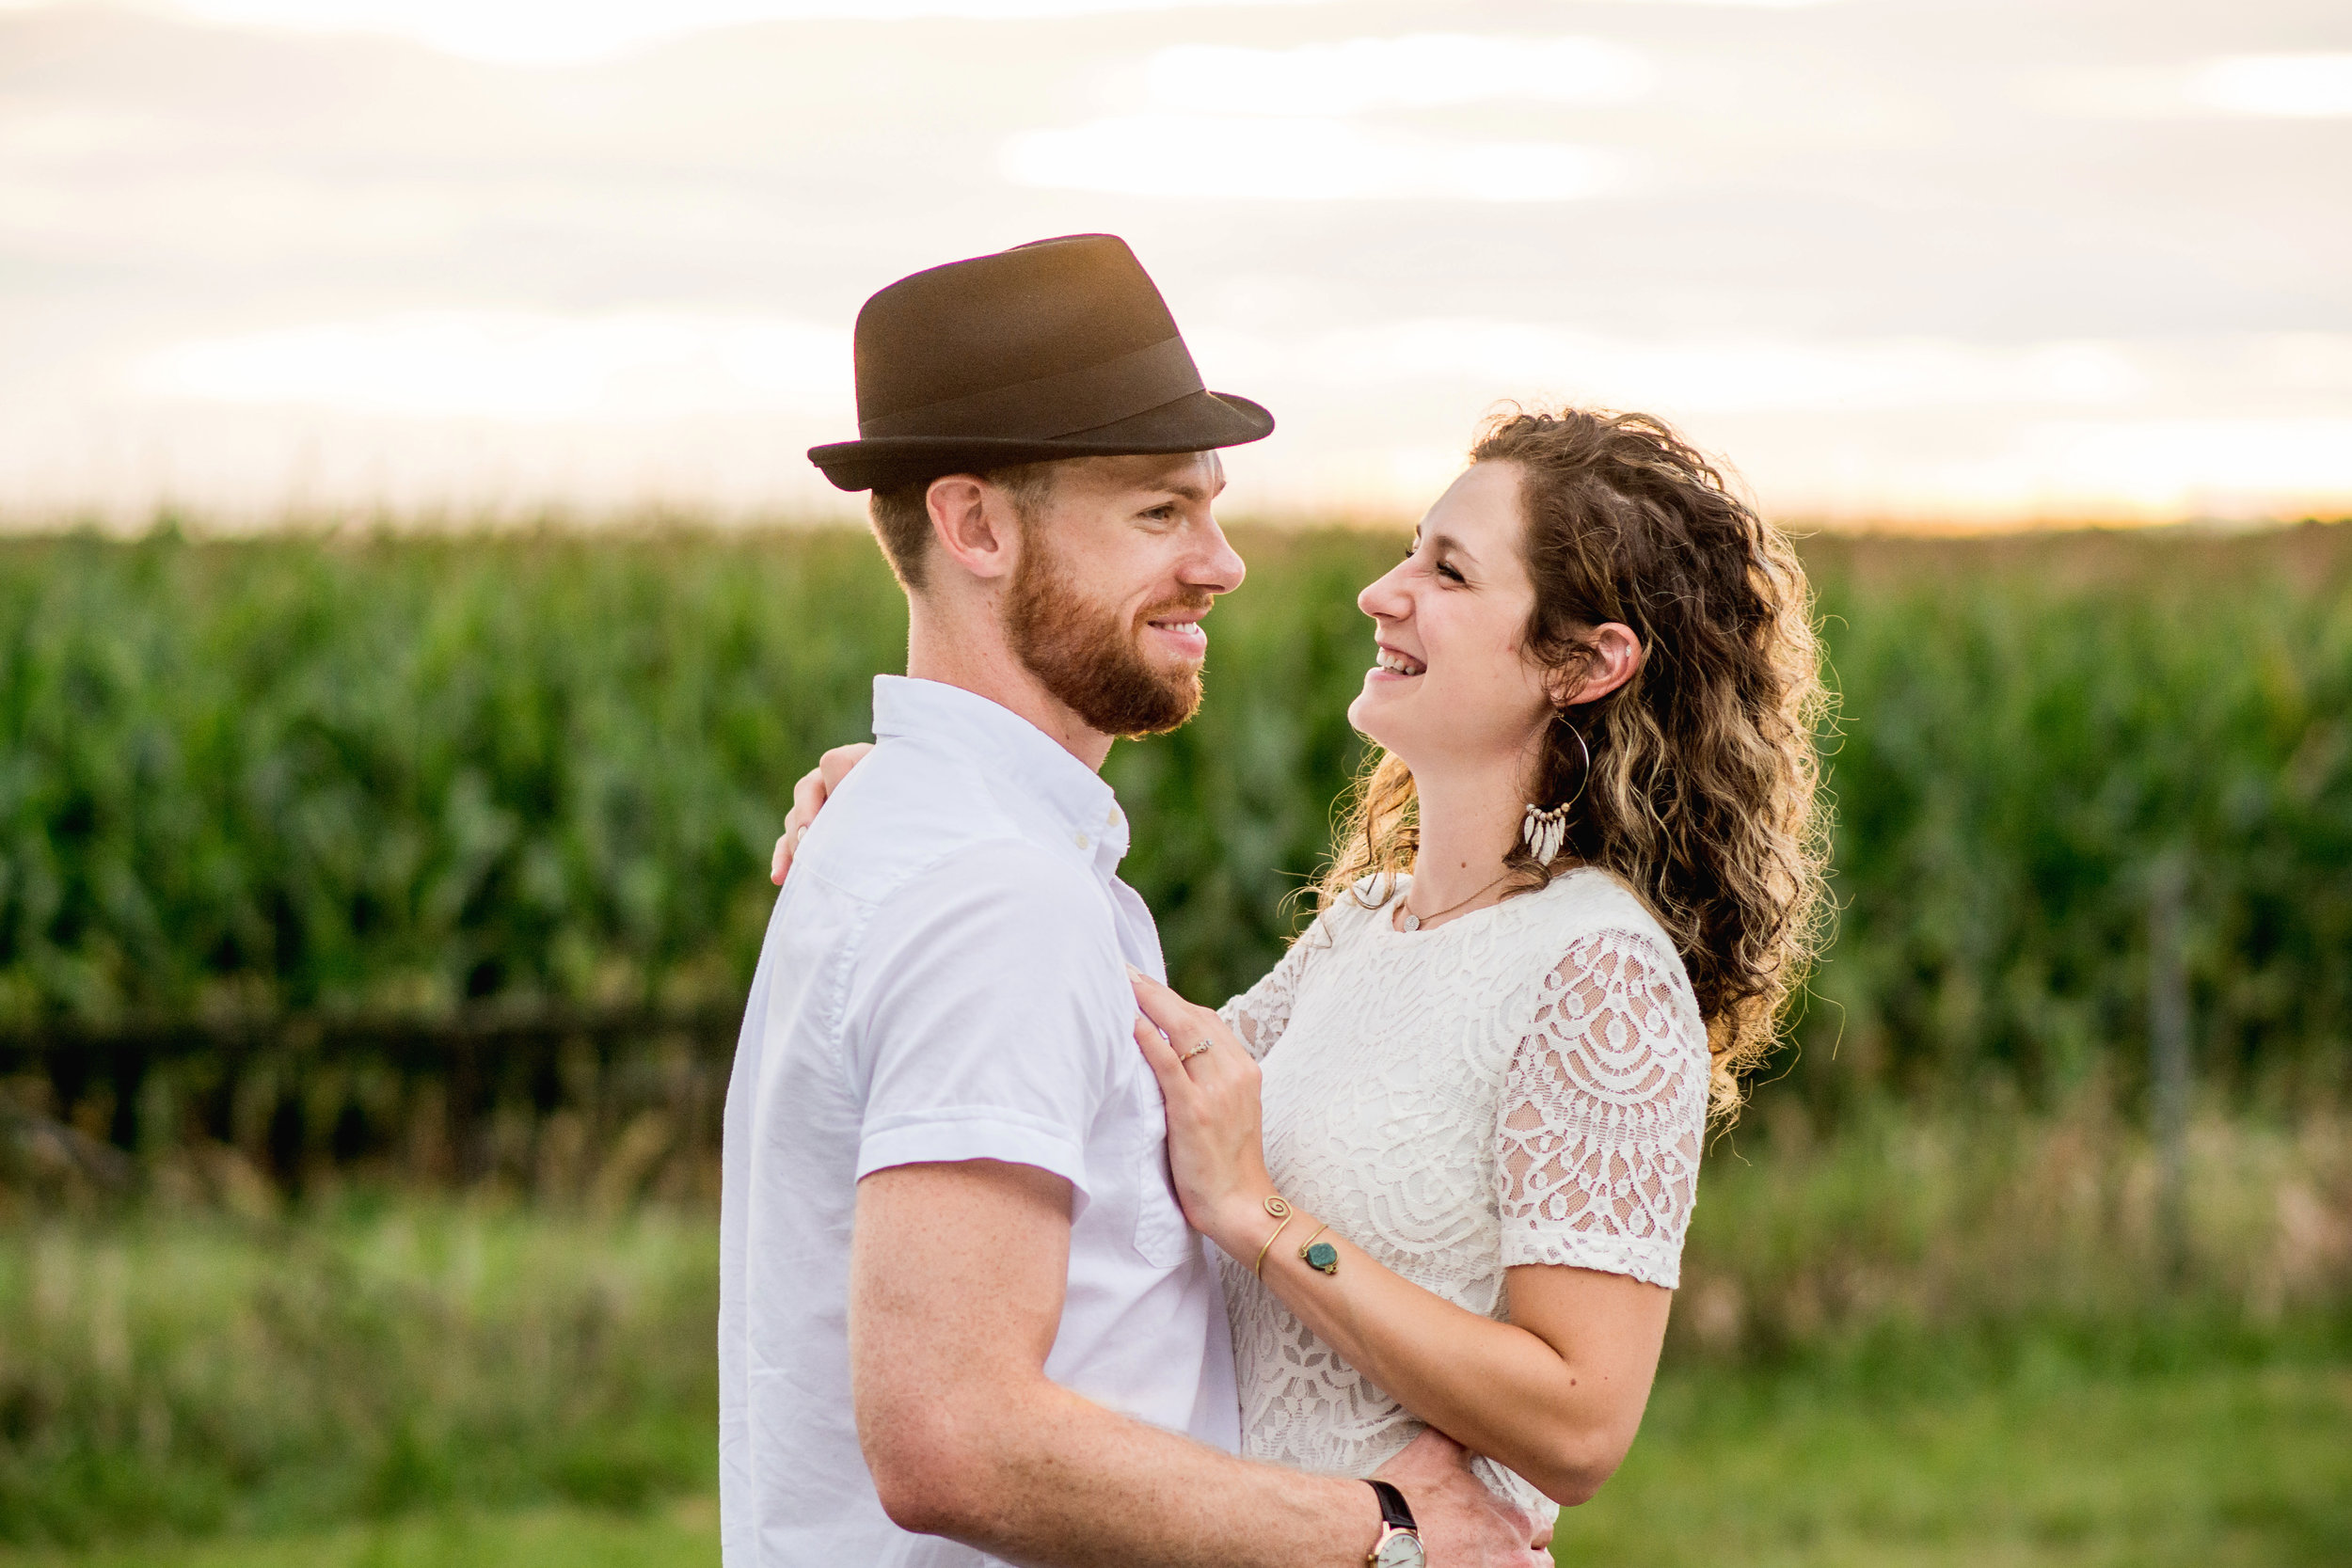 Amanda Noel Photography-lifestyle-engagement-sunset-springfield-ohio-stylish-intimate-couple-field